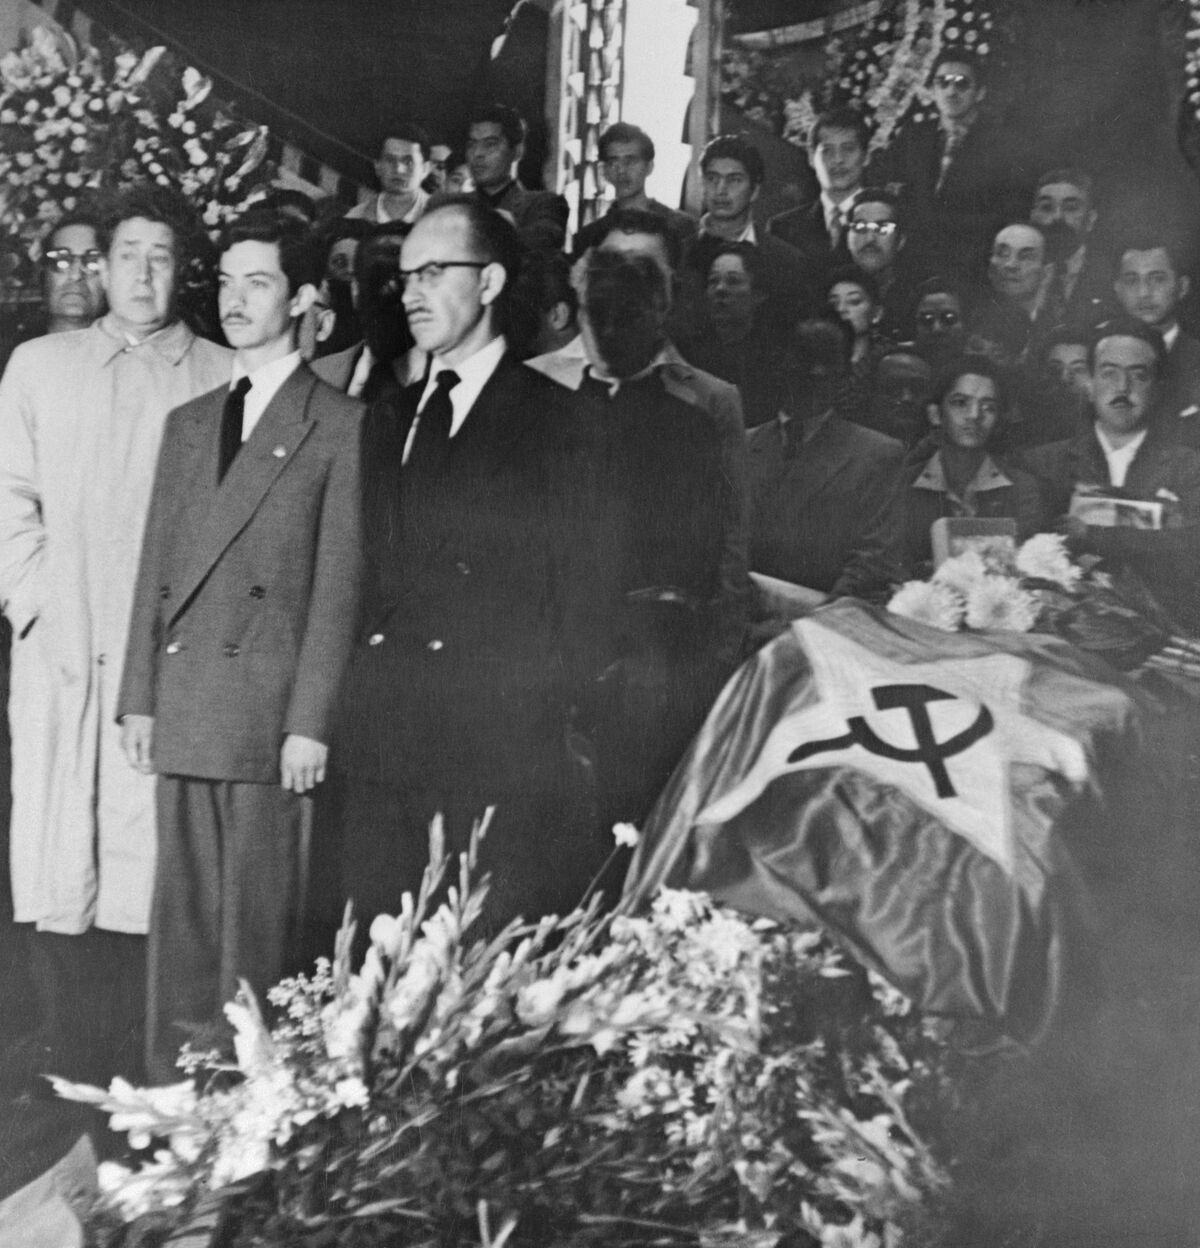 The hammer and sickle emblem is draped over the casket of Frida Kahlo at the Palace of Fine Arts in Mexico City, 1954. Photo by Bettmann via Getty Images.